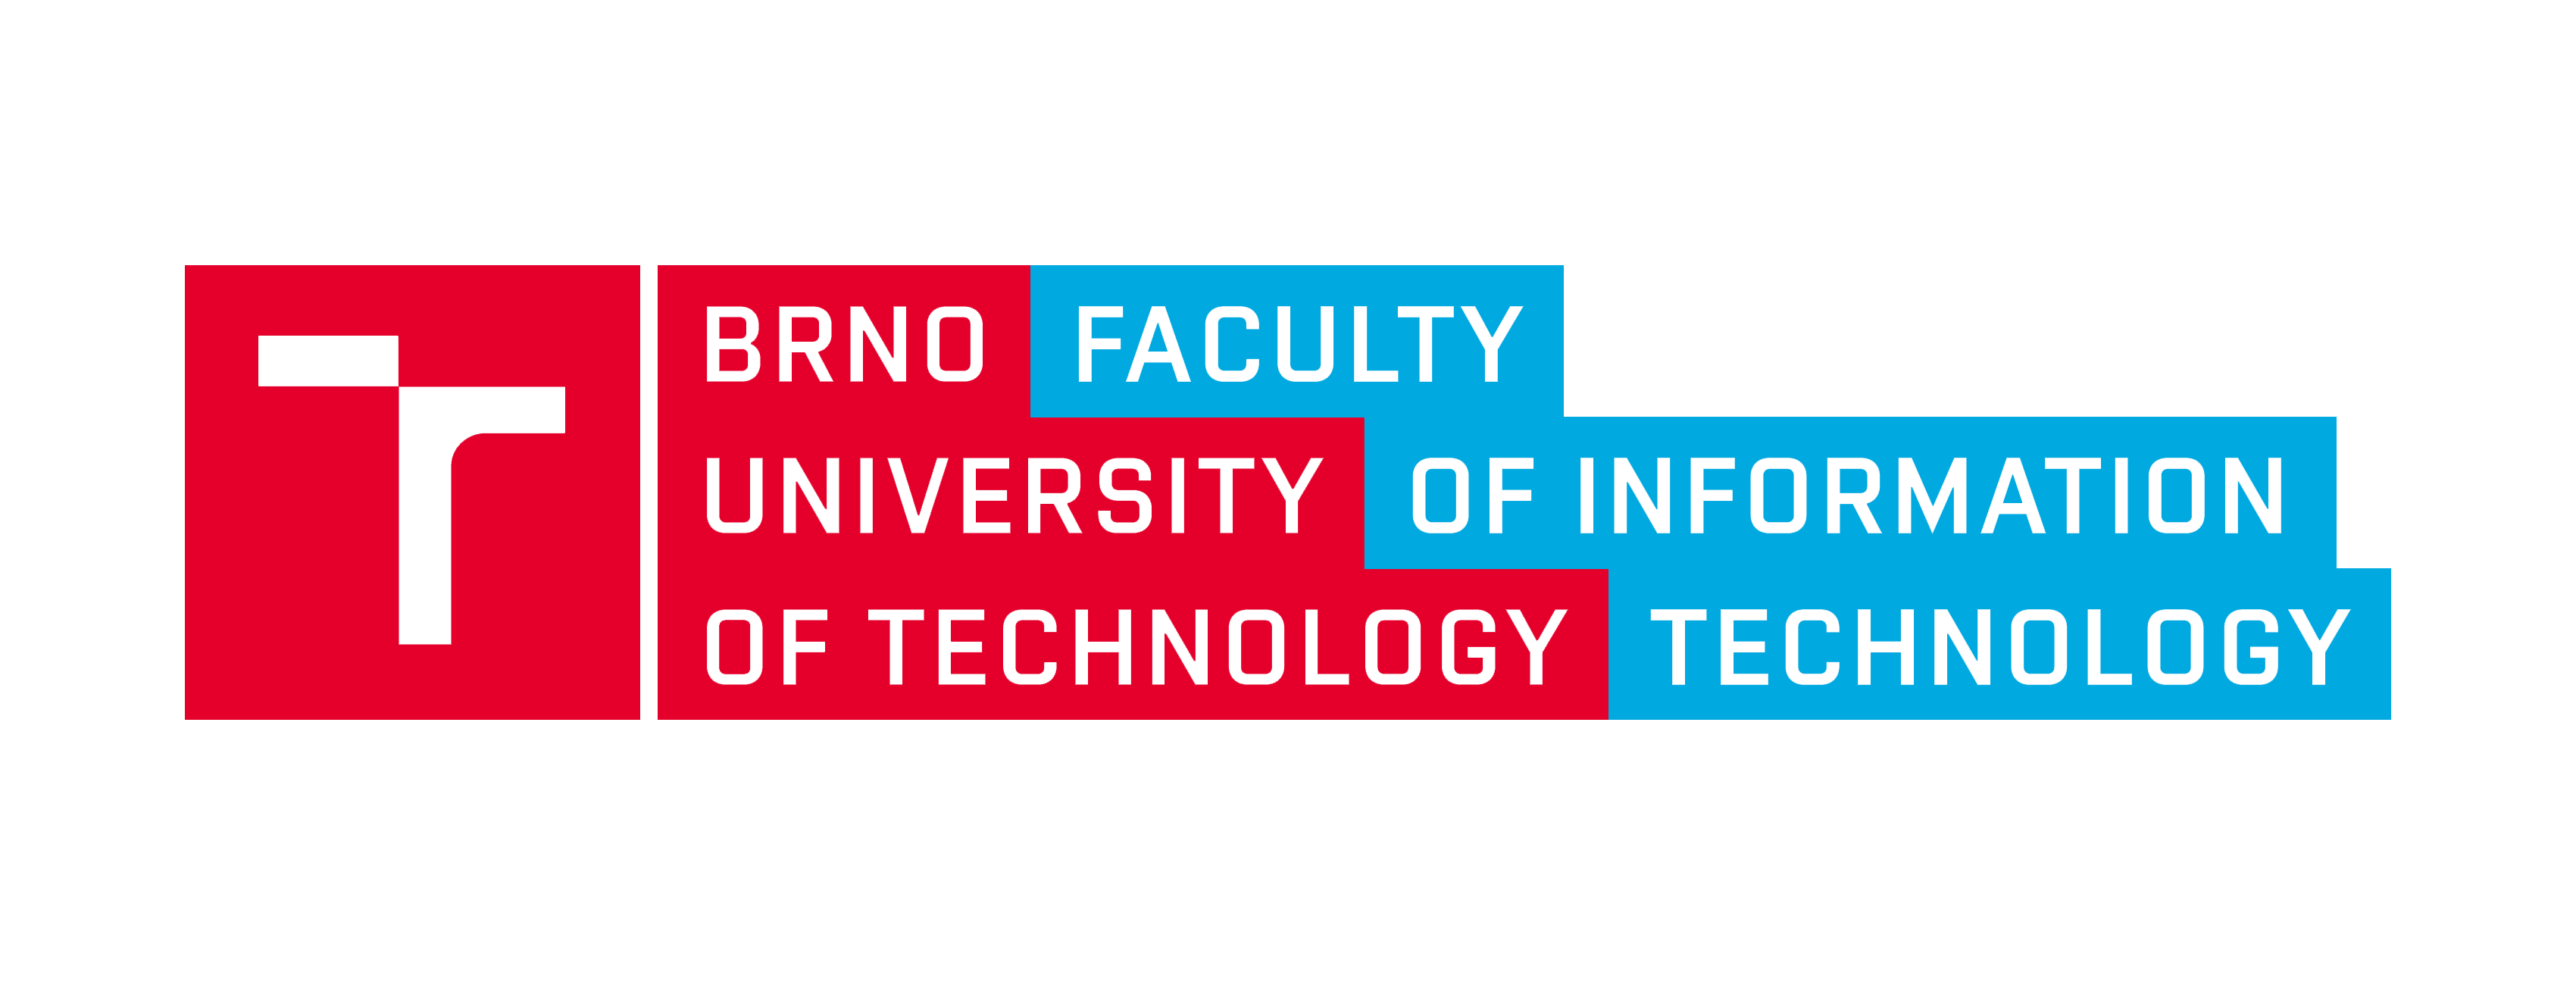 Brno University of Technology - Faculty of Information Technology logo